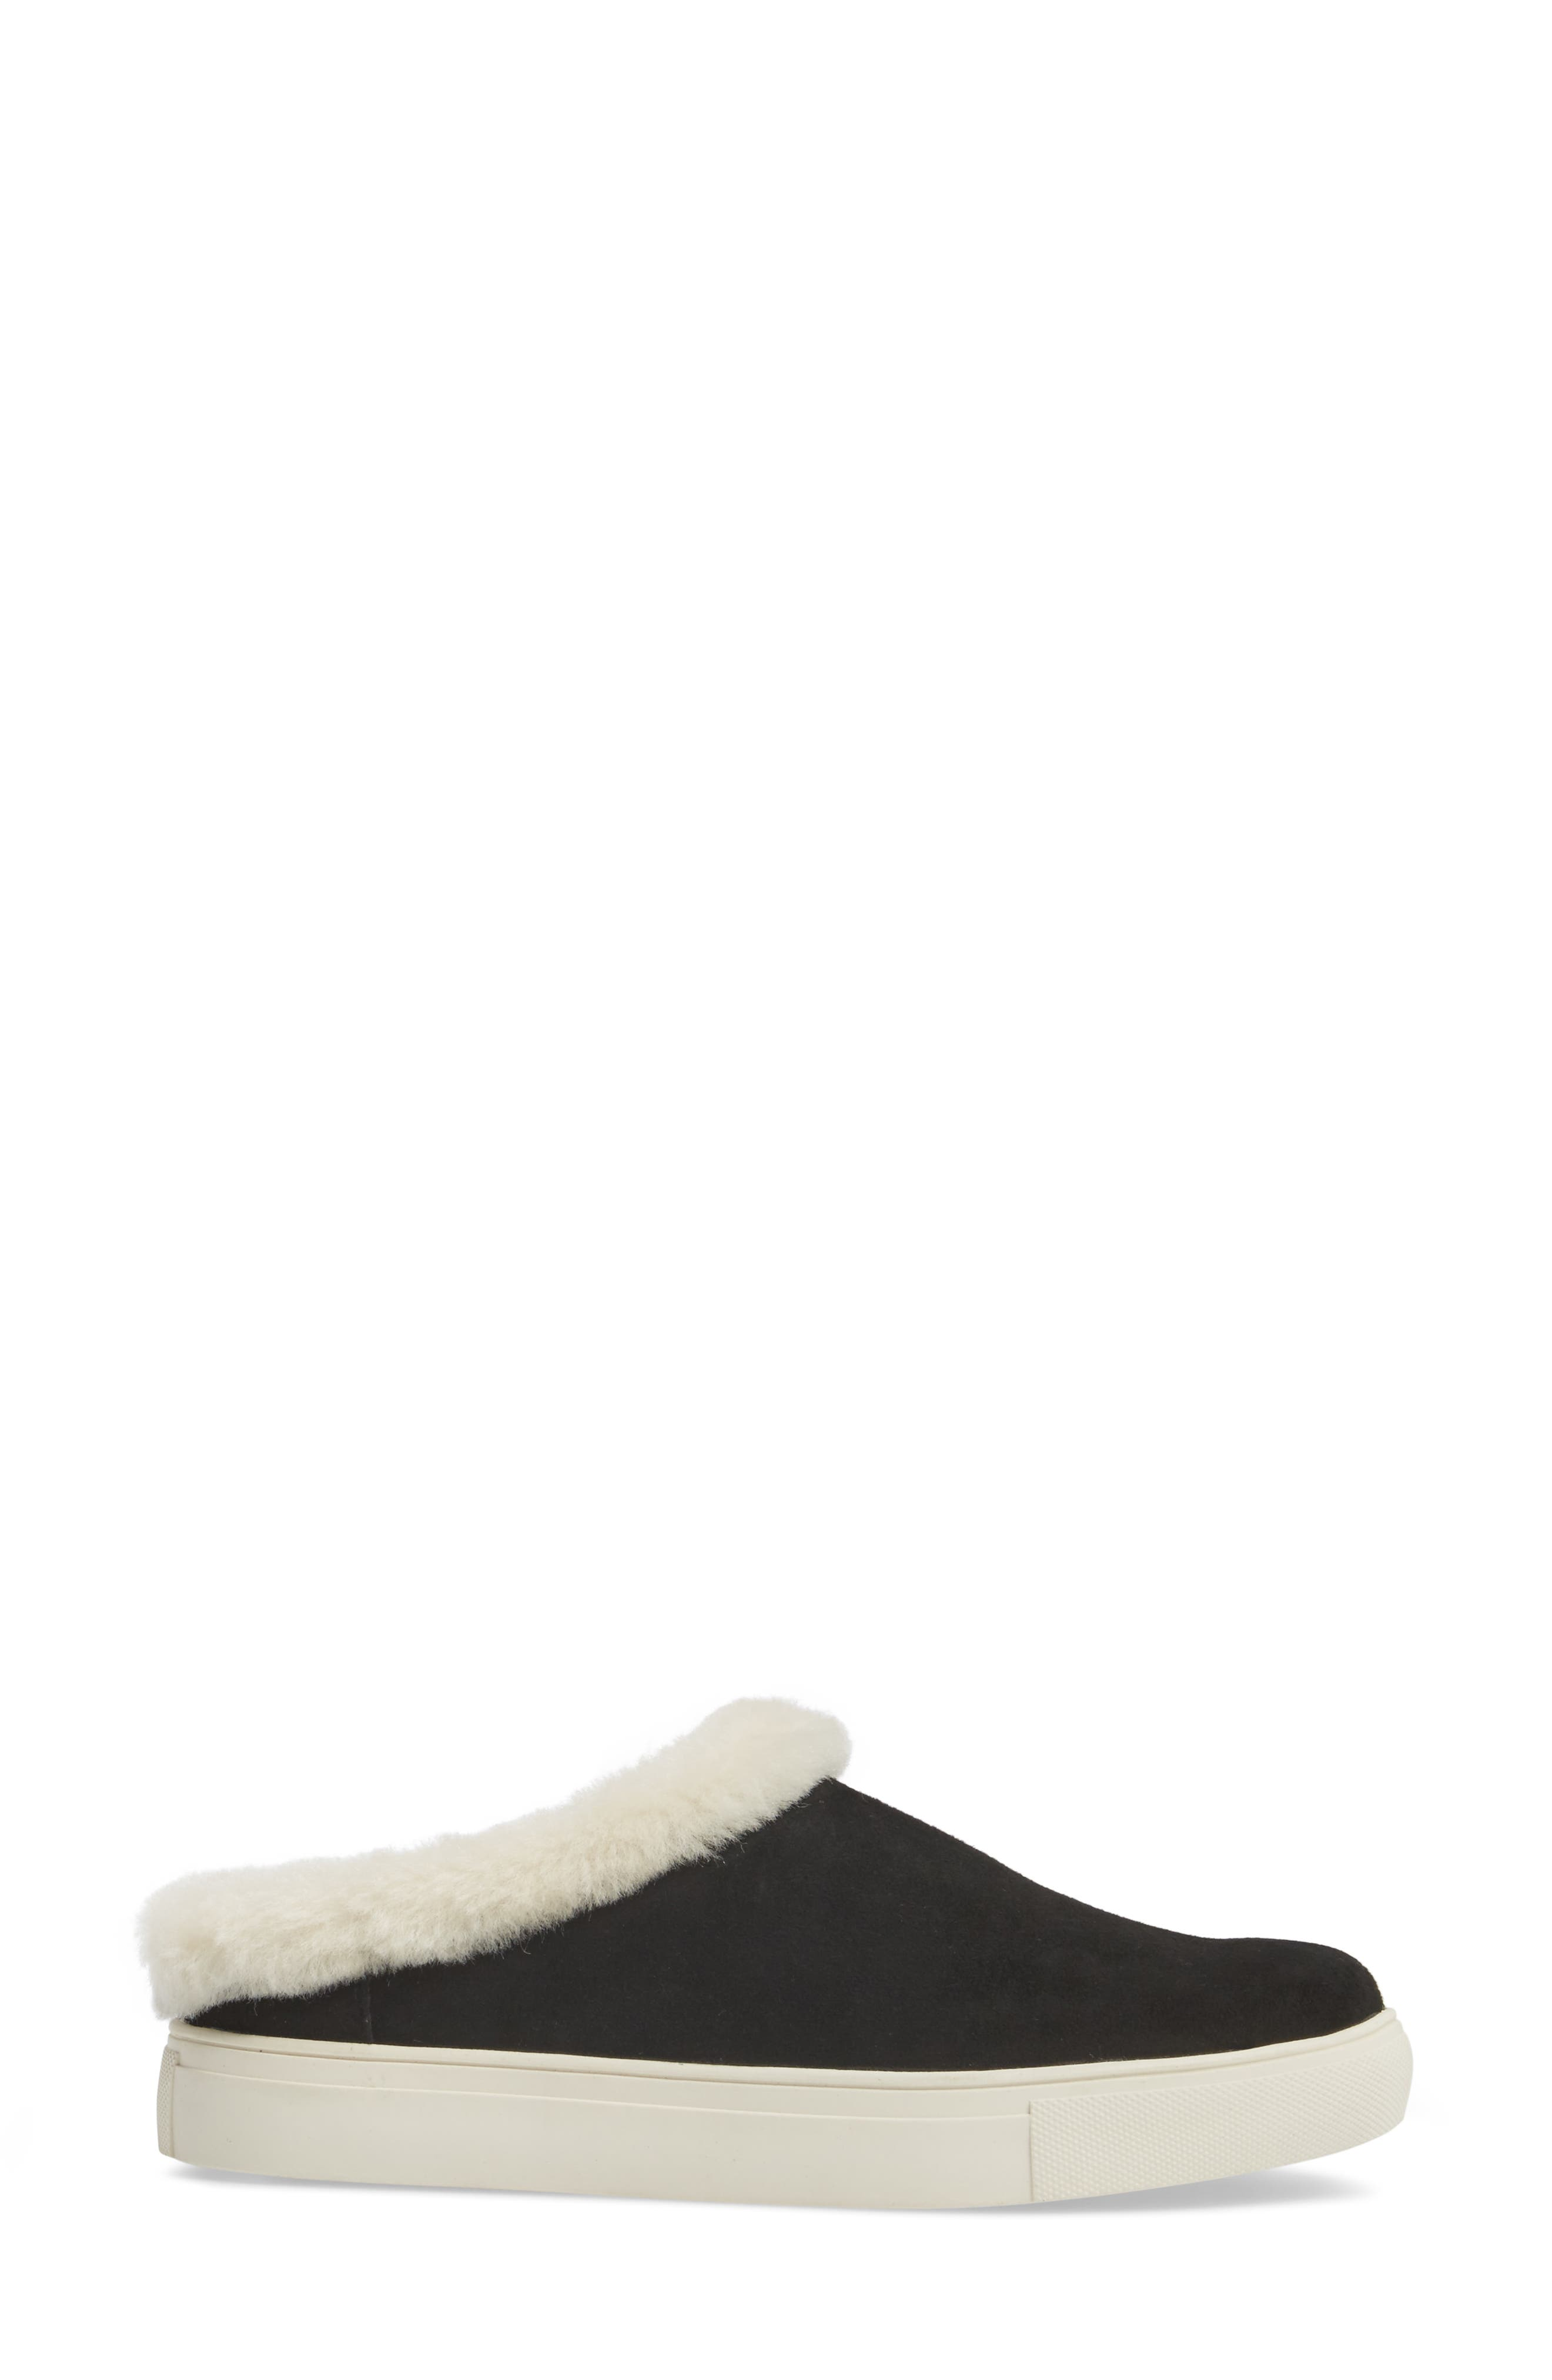 Leia Genuine Shearling Lined Slip-On,                             Alternate thumbnail 3, color,                             001